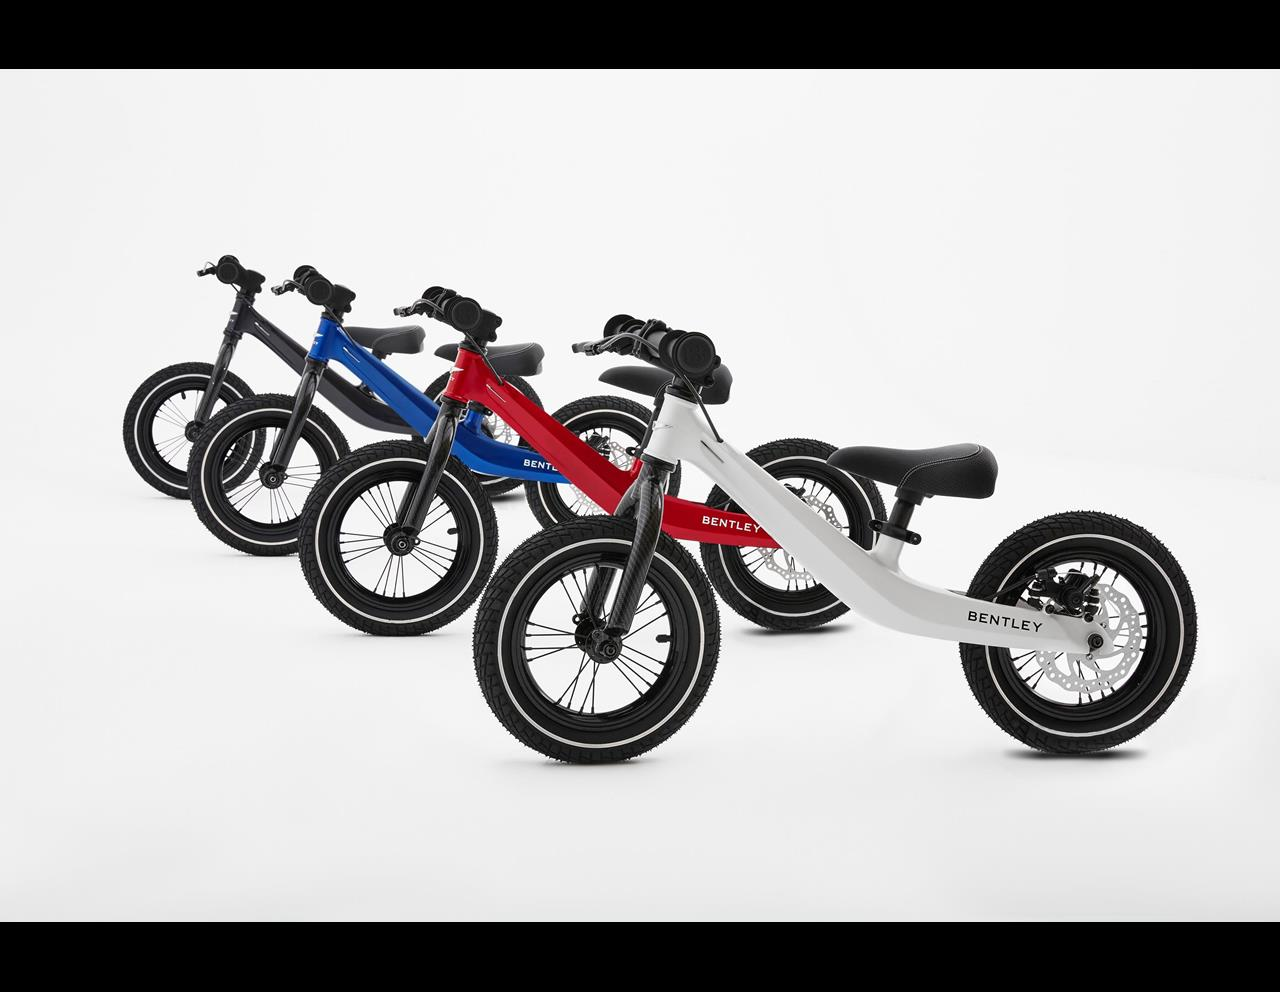 specifications and price of the Bentley Balance Bike in Nigeria